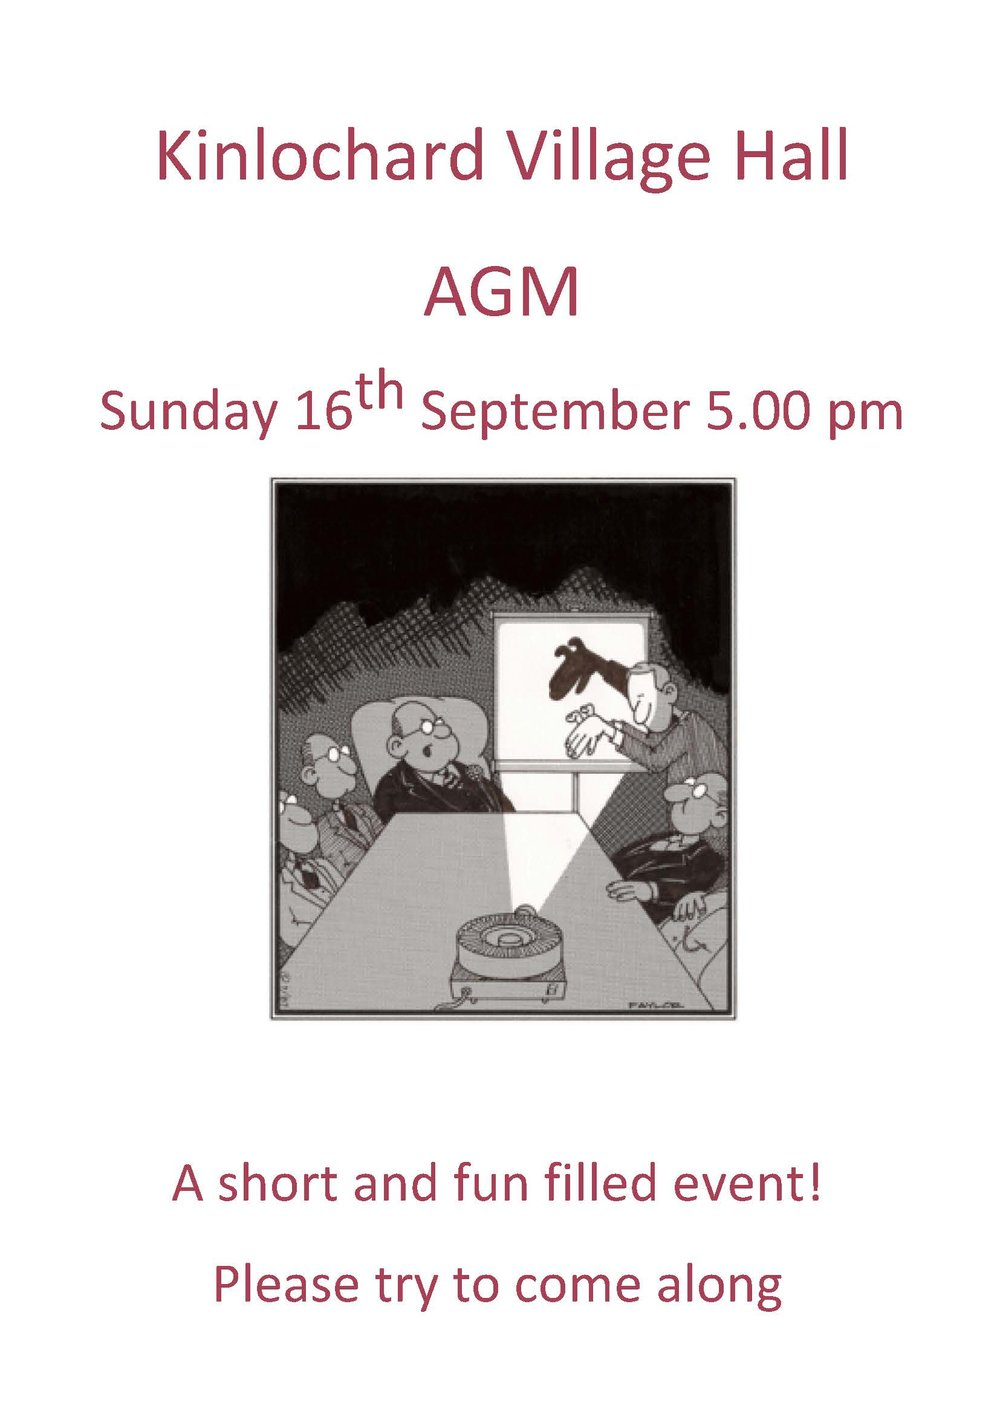 Kinlochard Village Hall agm 18 poster.jpg